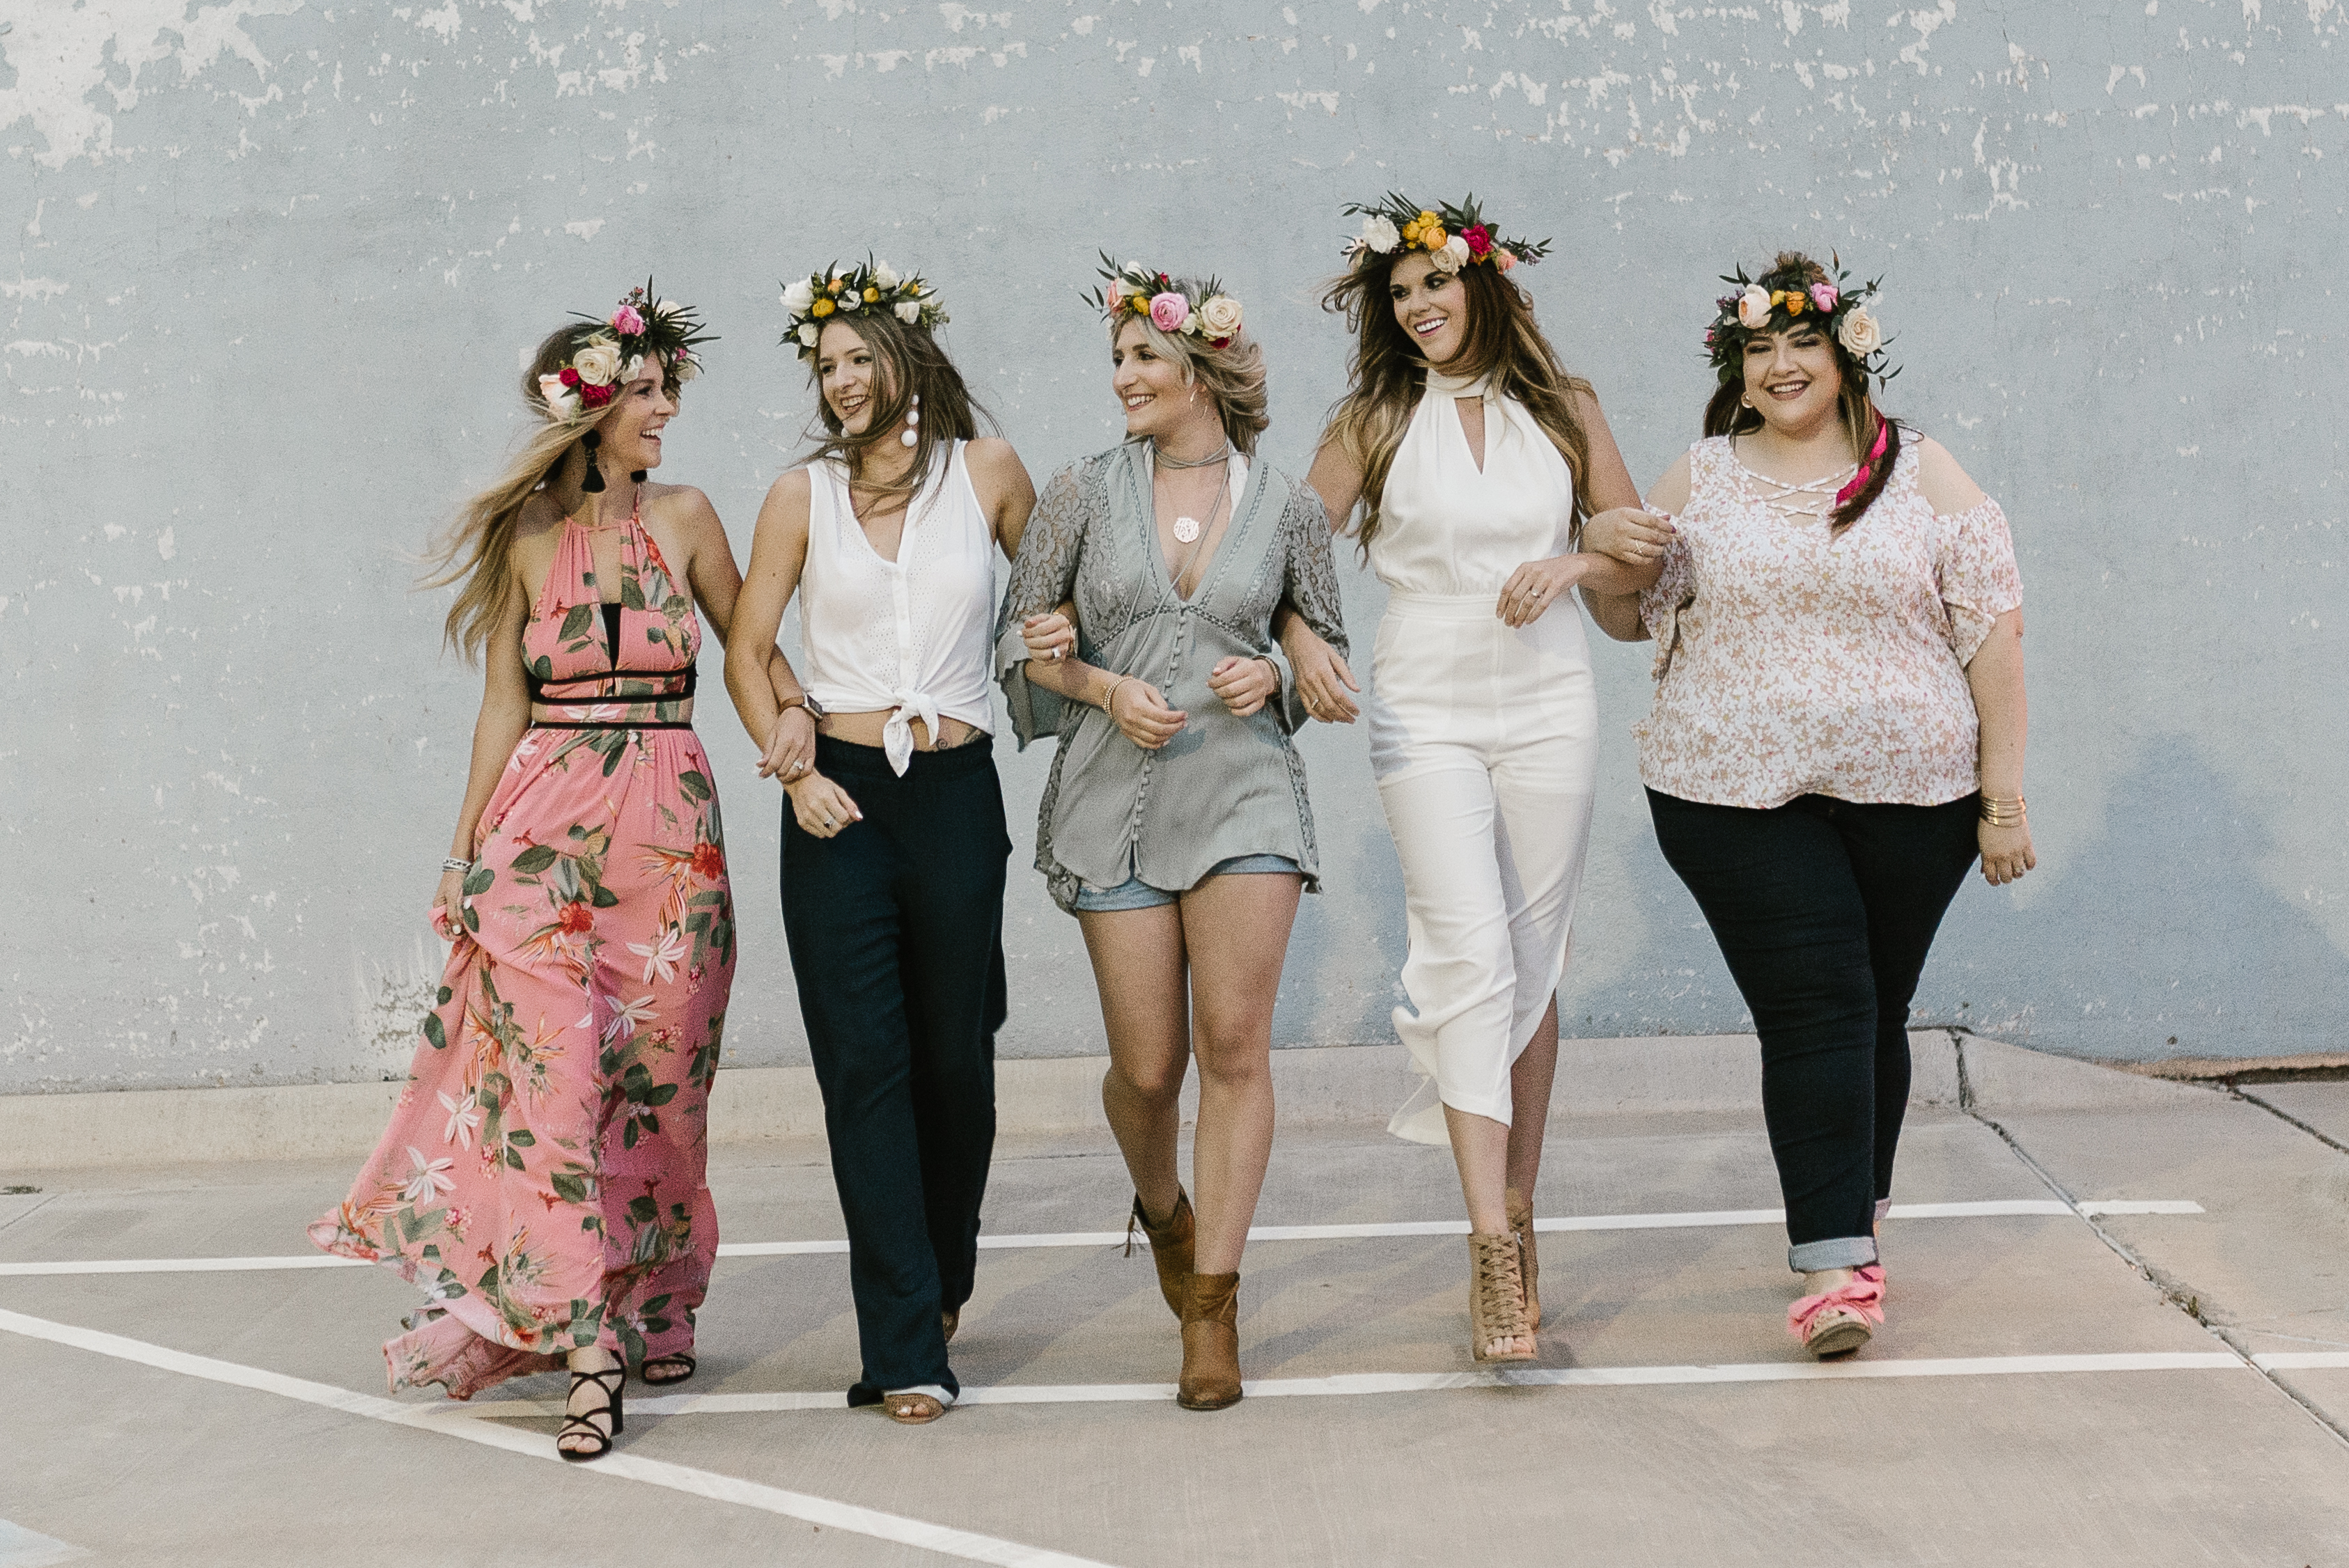 Flower Crown Party in West Texas   Bachelorette Idea   Lubbock, TX bloggers   by lifestyle and fashion blogger Audrey Madison stowe